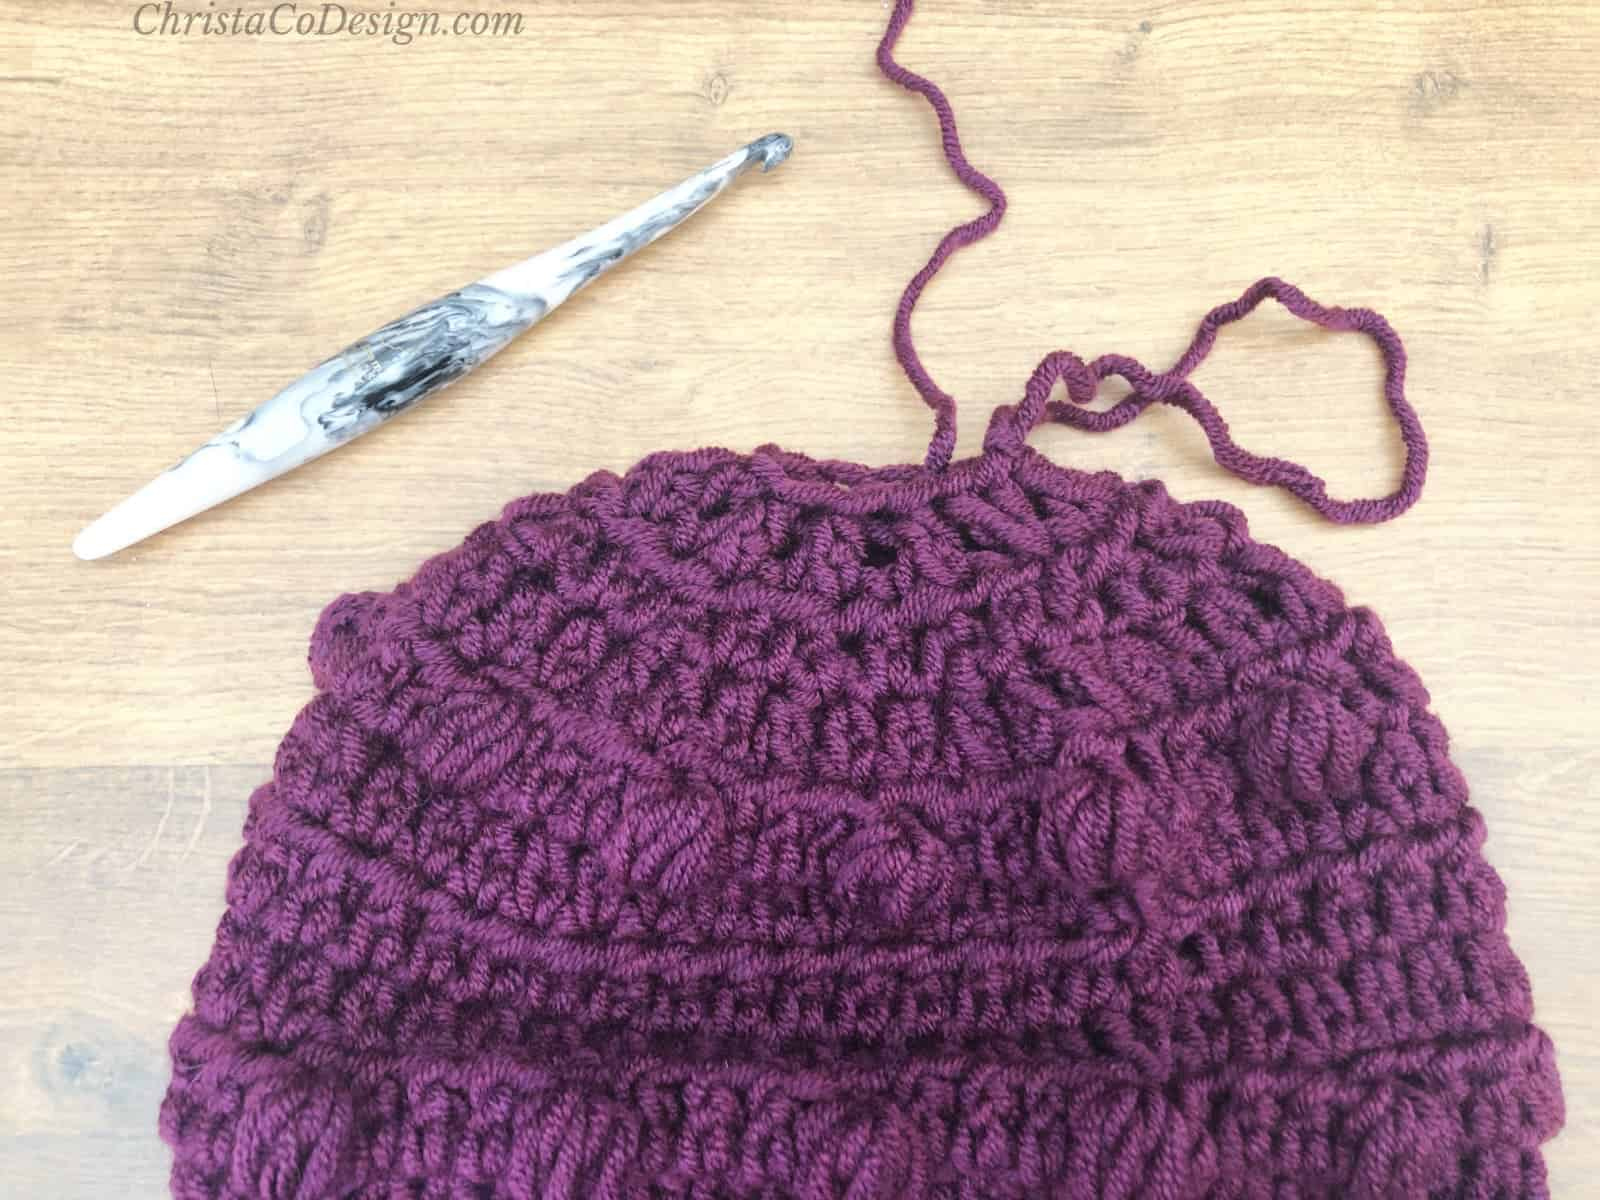 Close top of hat with yarn tail.